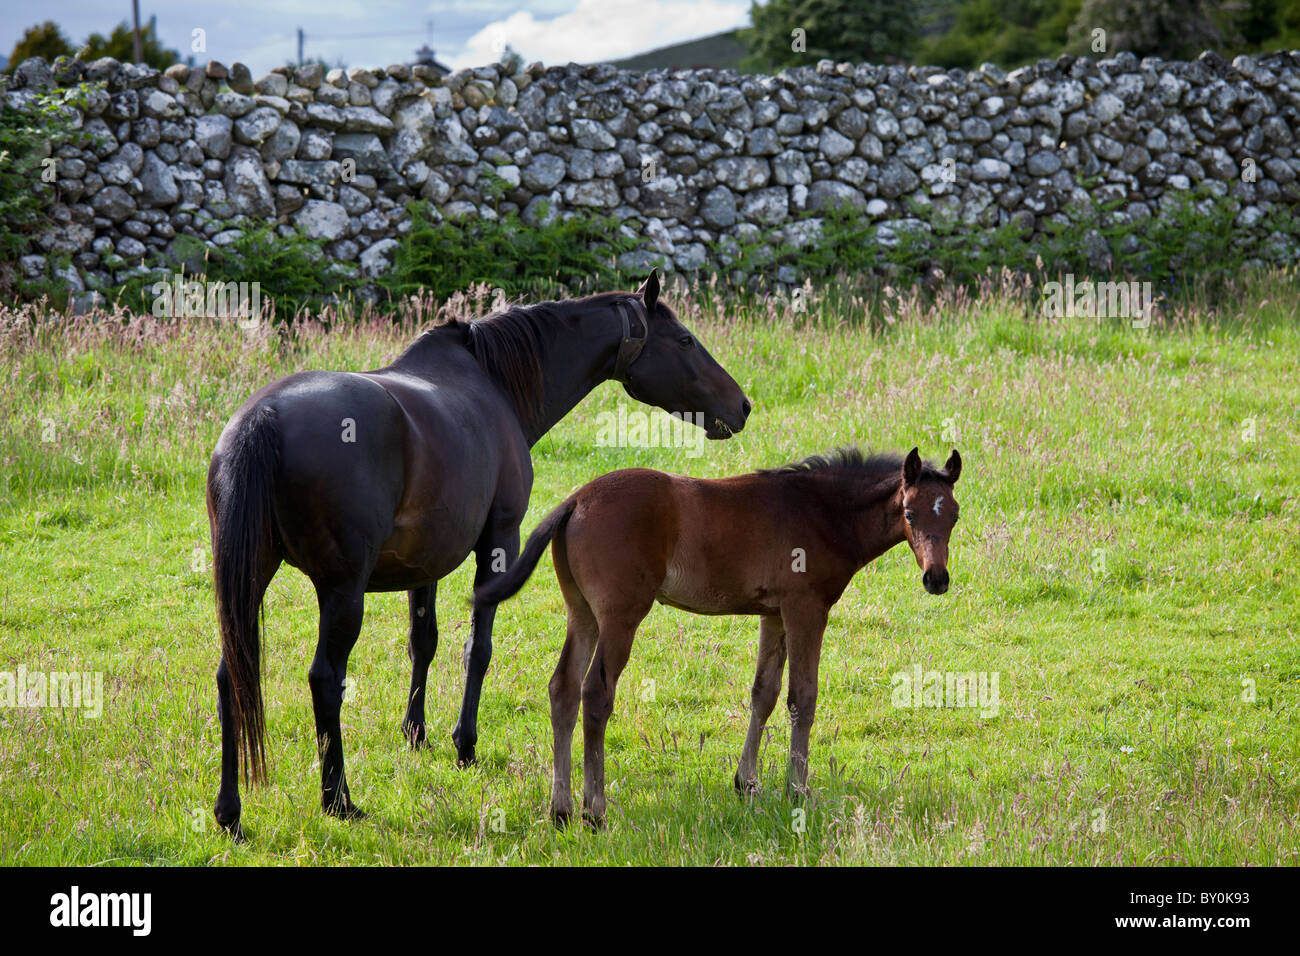 Irish mare horse and foal, County Galway, Ireland - Stock Image